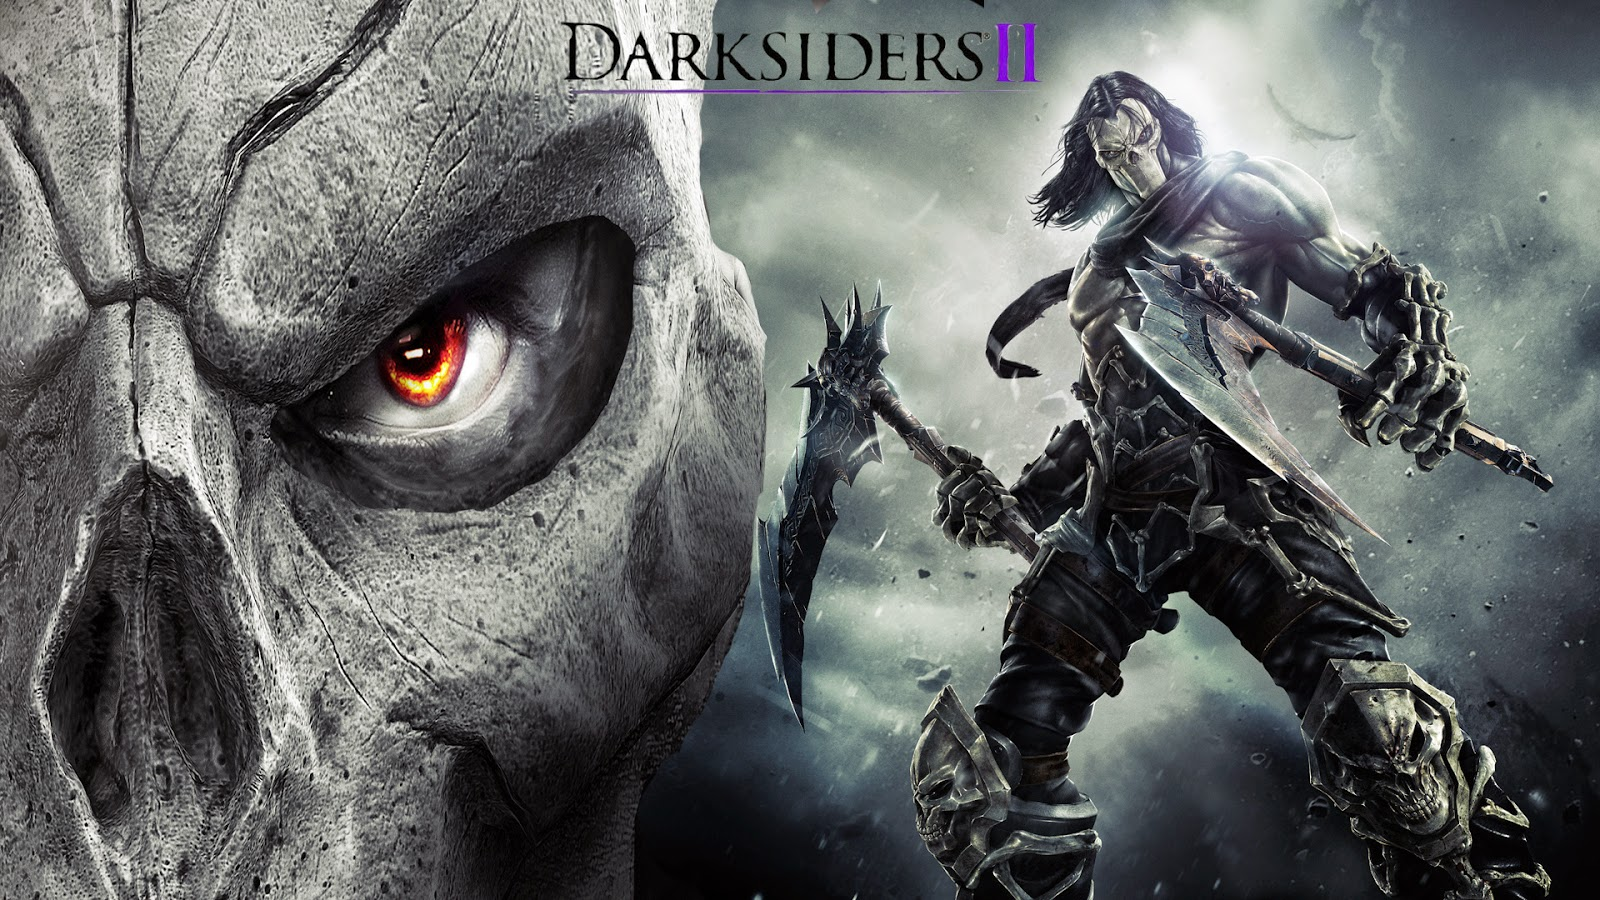 Darksiders 2  Darksiders 2 demo  Darksiders 2 free download  download Darksiders 2 for free  how to get Darksiders 2 for free full version  download Darksiders 2 free  free download Darksiders 2  crack Darksiders 2  Darksiders 2 crack  Darksiders 2 download  Darksiders 2 torrent  how to download Darksiders 2  Darksiders 2 for free  free Darksiders 2 download  Darksiders 2 for pc  Darksiders 2 for xbox 360  Darksiders 2 for ps3  Darksiders 2 xbox 360  Darksiders 2 pc  Darksiders 2 ps3  Darksiders 2 pc download free  how to get Darksiders 2 for free  Darksiders 2 pc download  Darksiders 2 download free pc full  Darksiders 2 free download game  Darksiders 2 game  Darksiders 2 descargar  Darksiders 2 aflaai  Darksiders 2 downloade  Darksiders 2 downloaden  Darksiders 2 telecharger  Darksiders 2 caricare  Darksiders 2 letoltes  Darksiders 2 last ned  Darksiders 2 baixar  Darksiders 2 indir  Darksiders 2 ladda  descargar Darksiders 2  aflaai Darksiders 2  downloade Darksiders 2  downloaden Darksiders 2  telecharger Darksiders 2  caricare Darksiders 2  letoltes Darksiders 2  last ned Darksiders 2  baixar Darksiders 2  indir Darksiders 2  ladda Darksiders 2  Darksiders 2 keygen  Darksiders 2 serial  Darksiders 2 cracked  Darksiders 2 cd key  Darksiders 2 iso  Darksiders 2 Skidrow